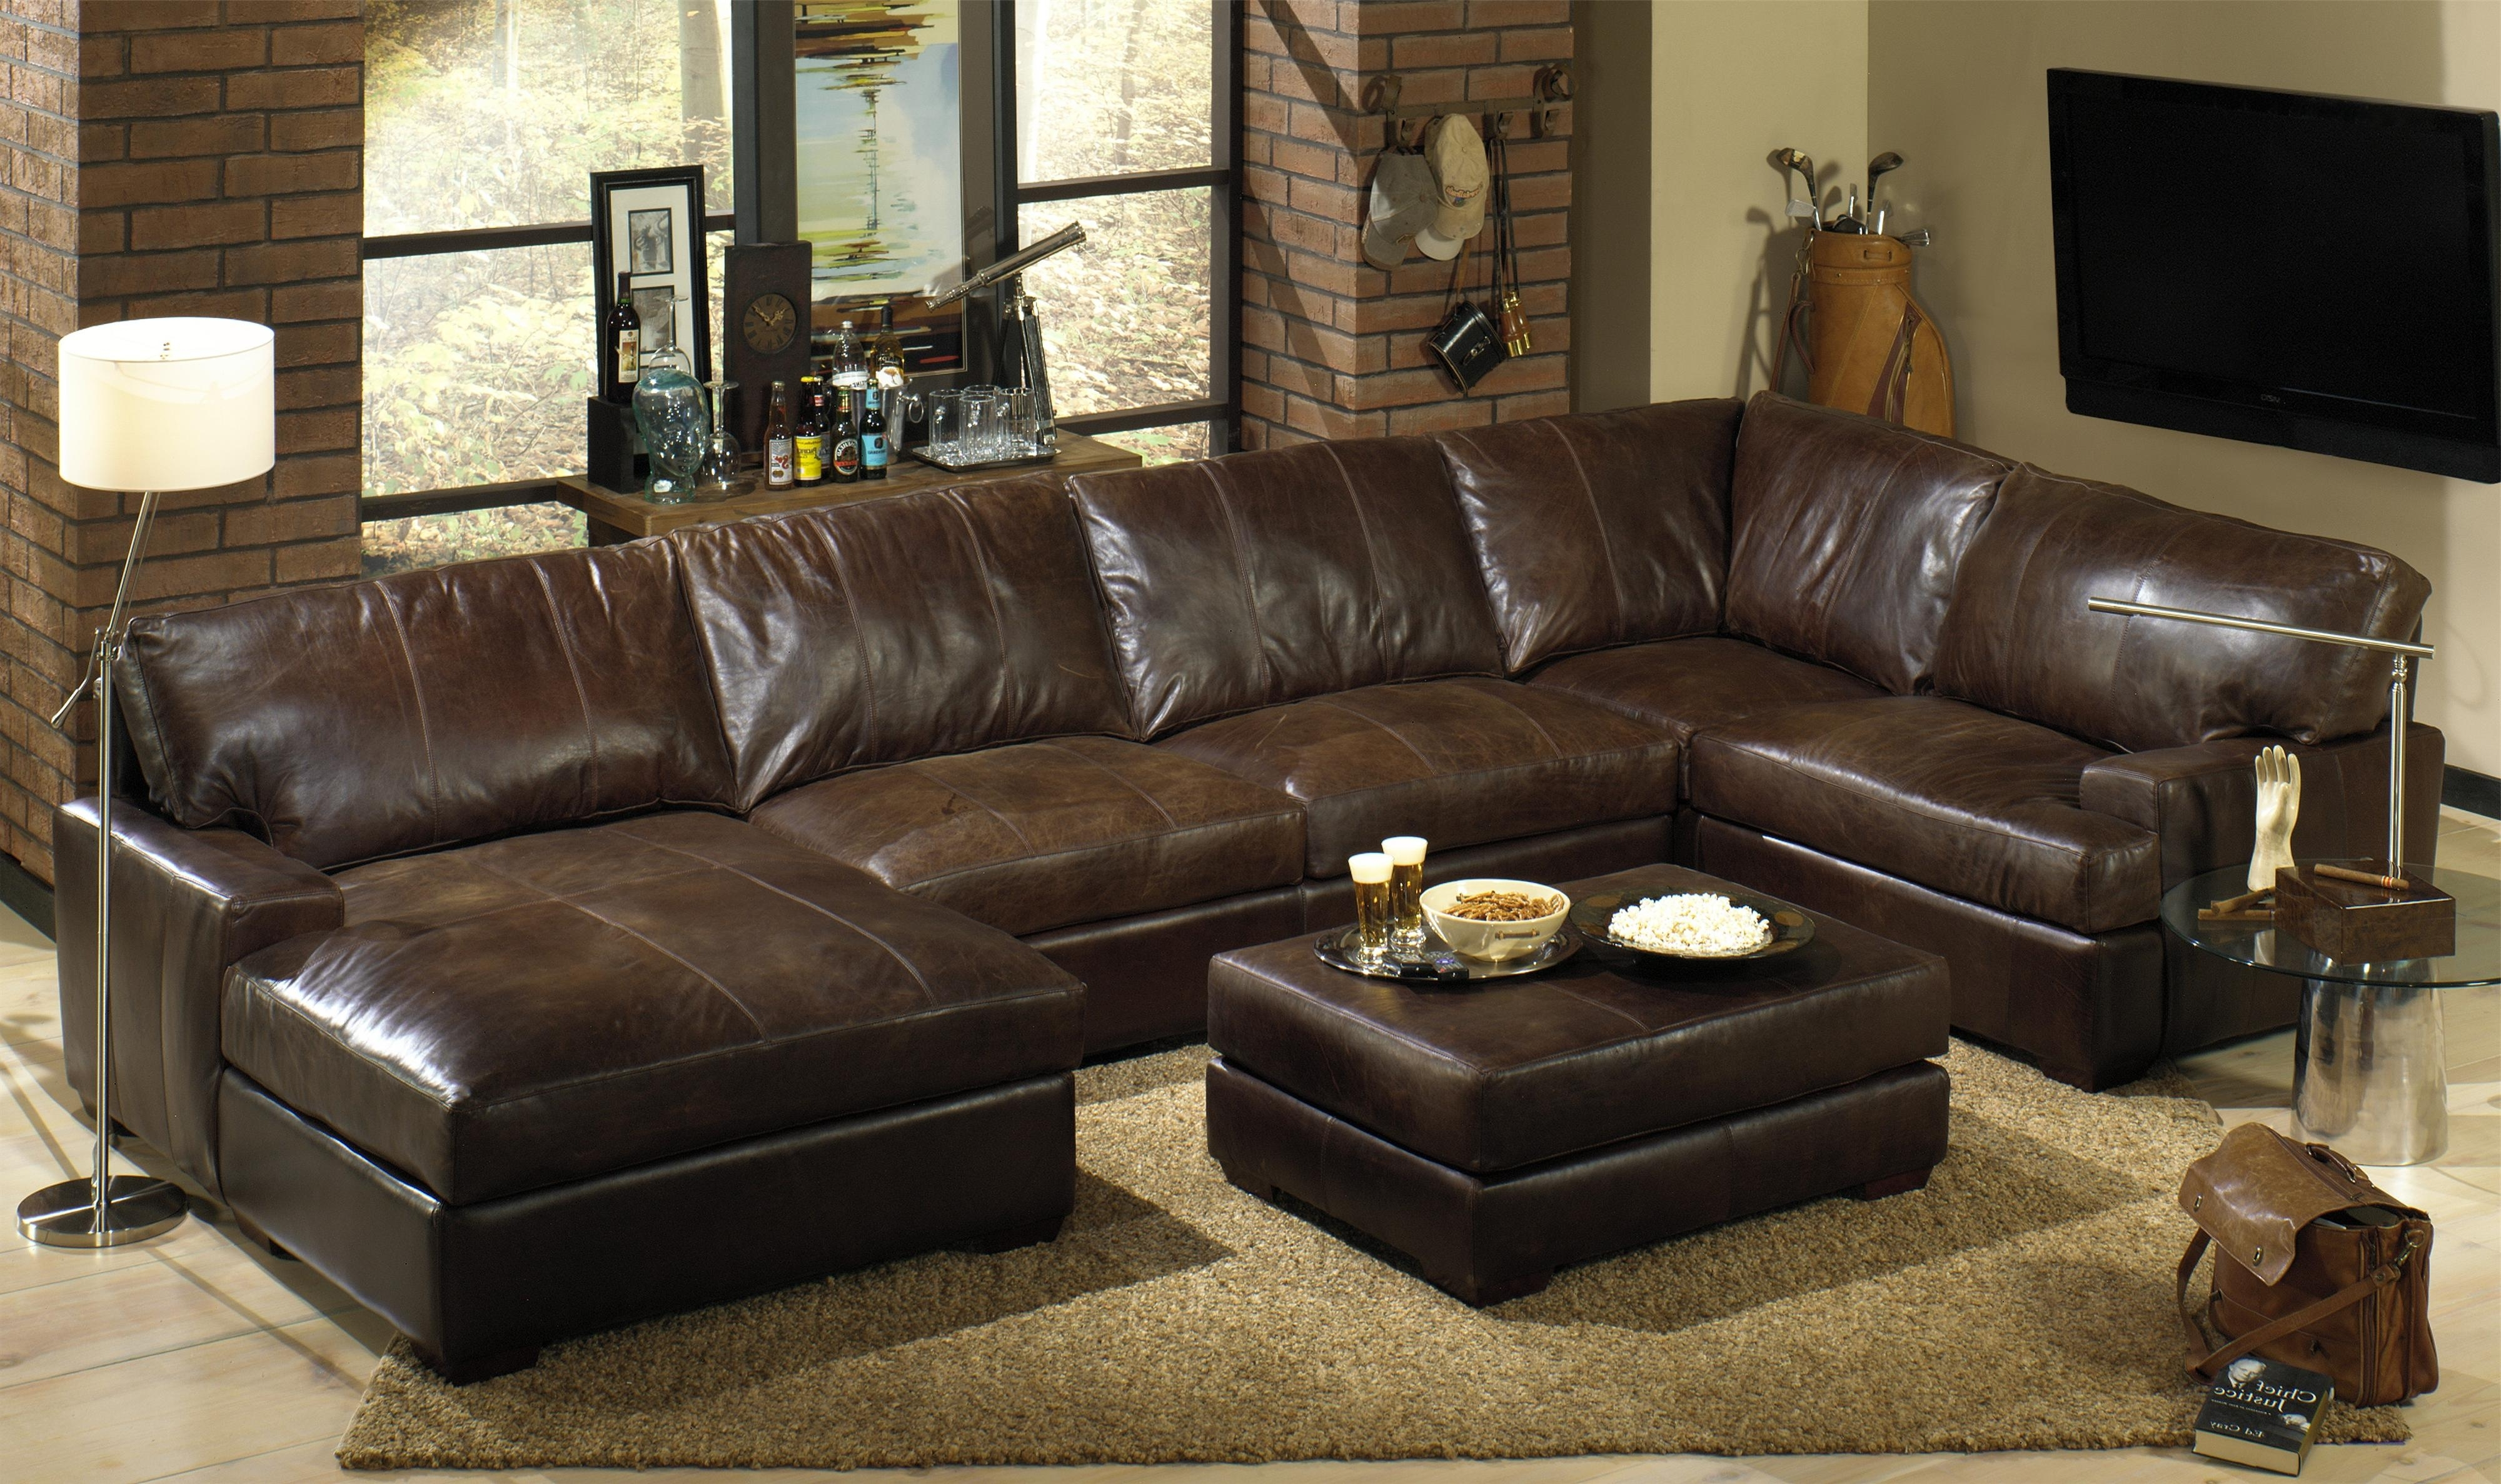 2019 Sectional Sofas With Chaise Lounge And Ottoman Pertaining To Chaise Lounges : Sofas Oversized S Deep Seat Sectional And Leather (View 4 of 20)